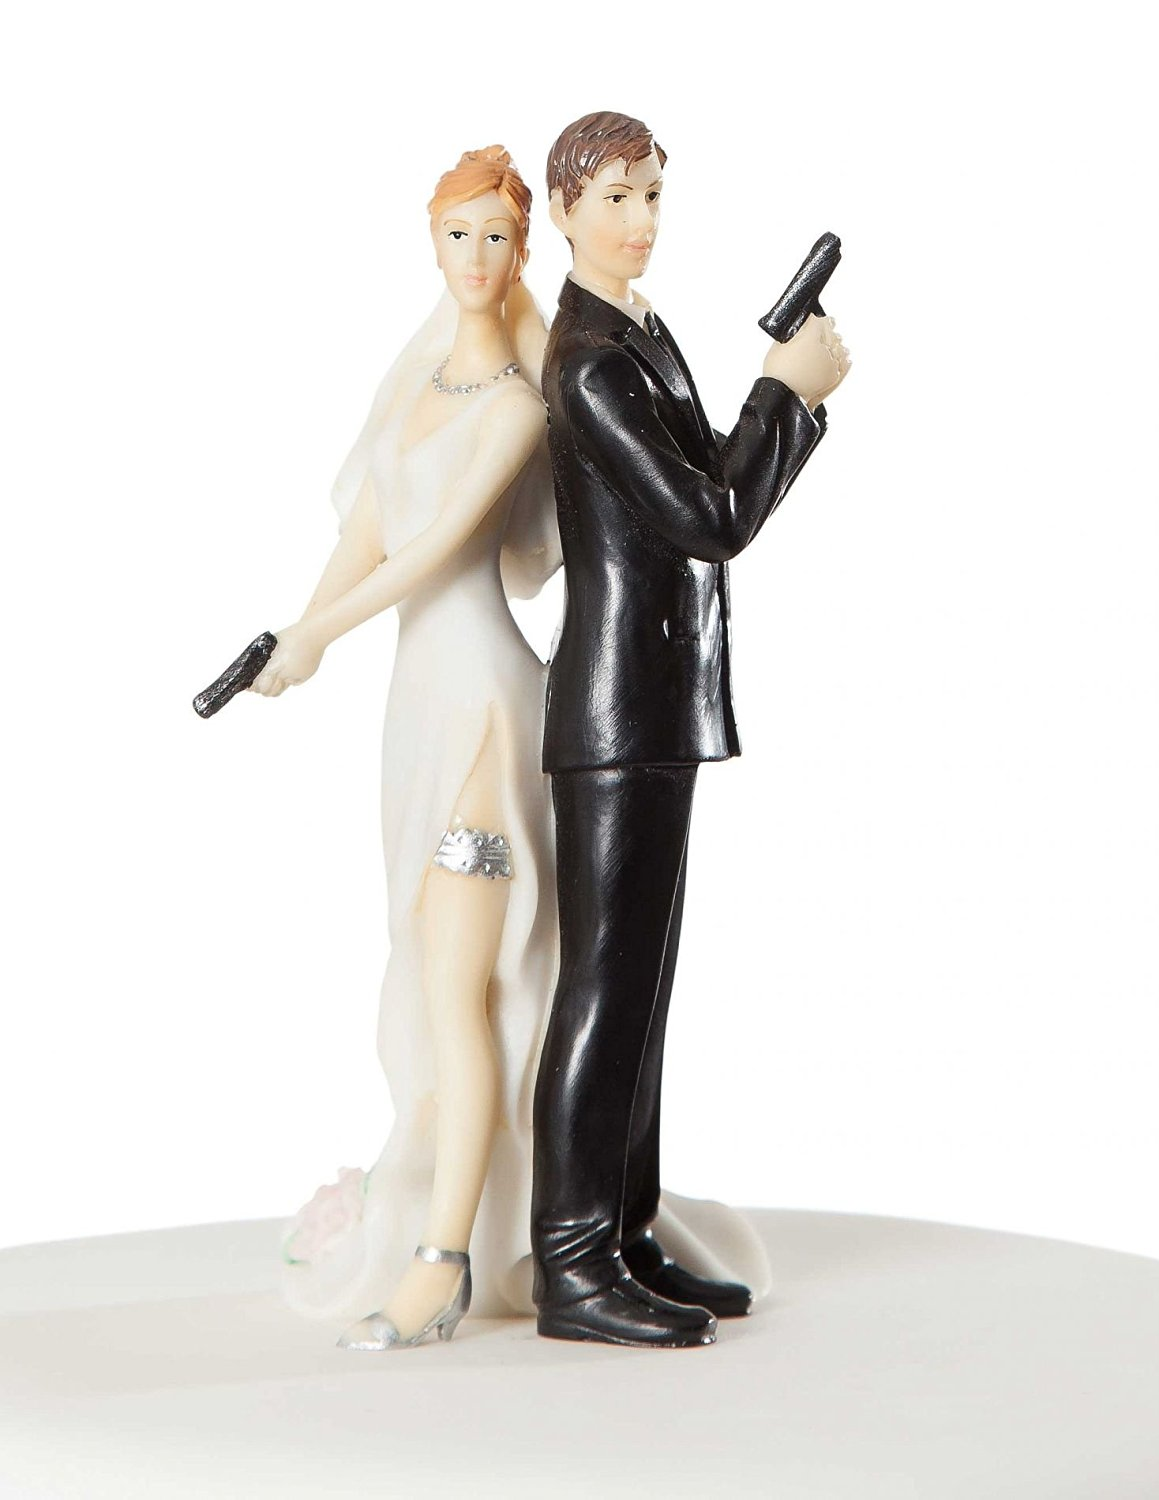 Super sexy spy wedding bride and groom cake topper figurine 3